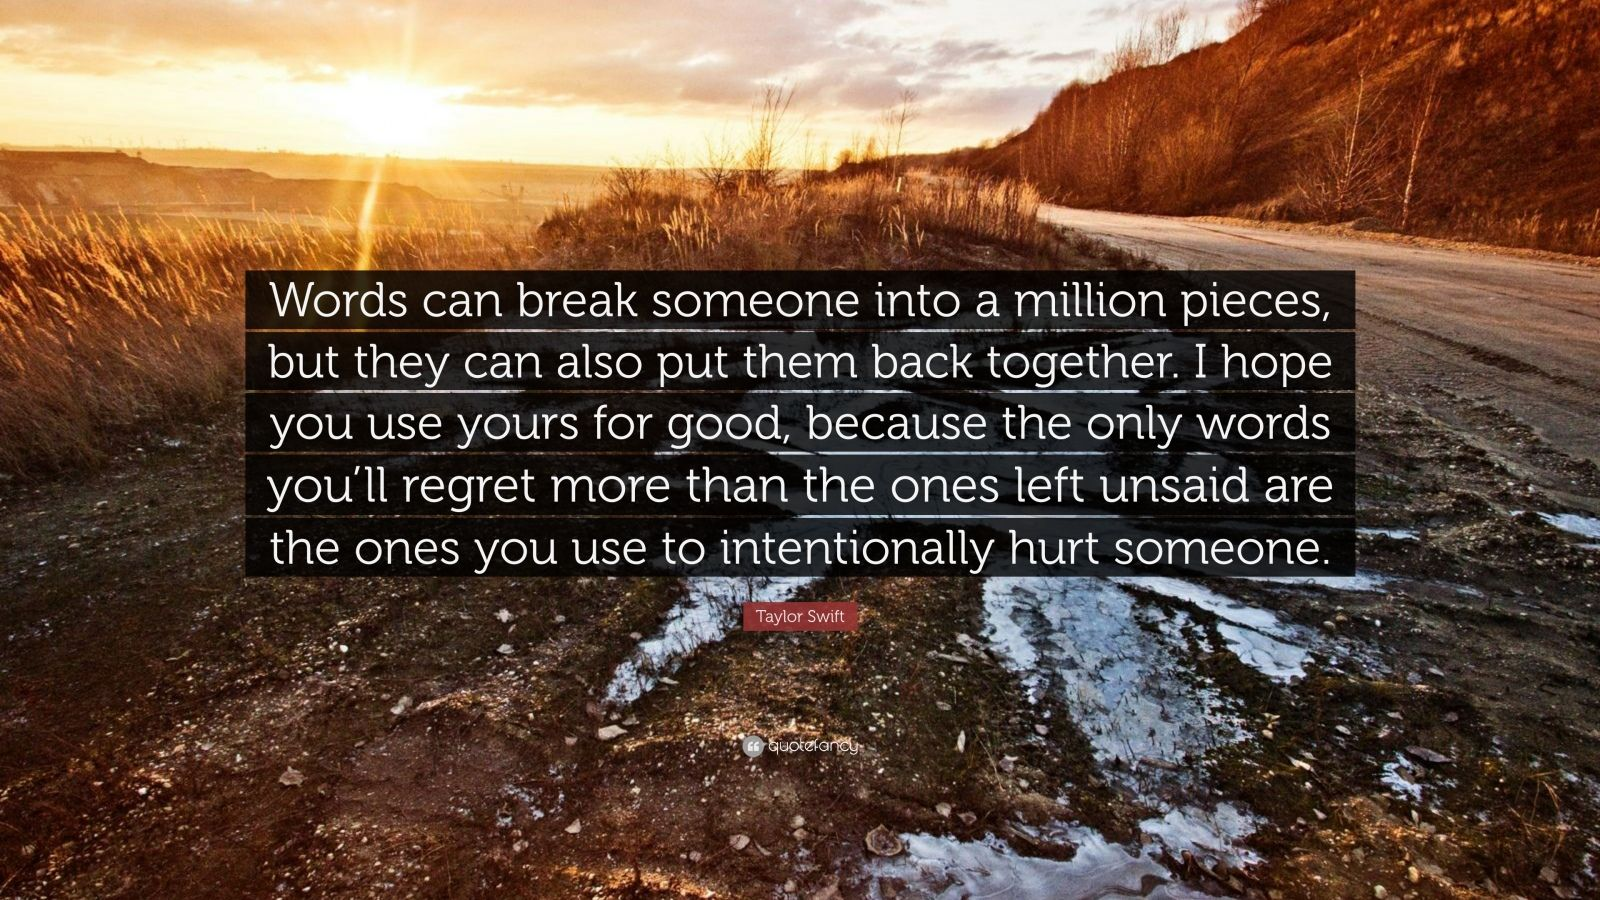 """Taylor Swift Quote: """"Words can break someone into a million pieces, but they can also put them back together. I hope you use yours for good, because the only words you'll regret more than the ones left unsaid are the ones you use to intentionally hurt someone."""""""